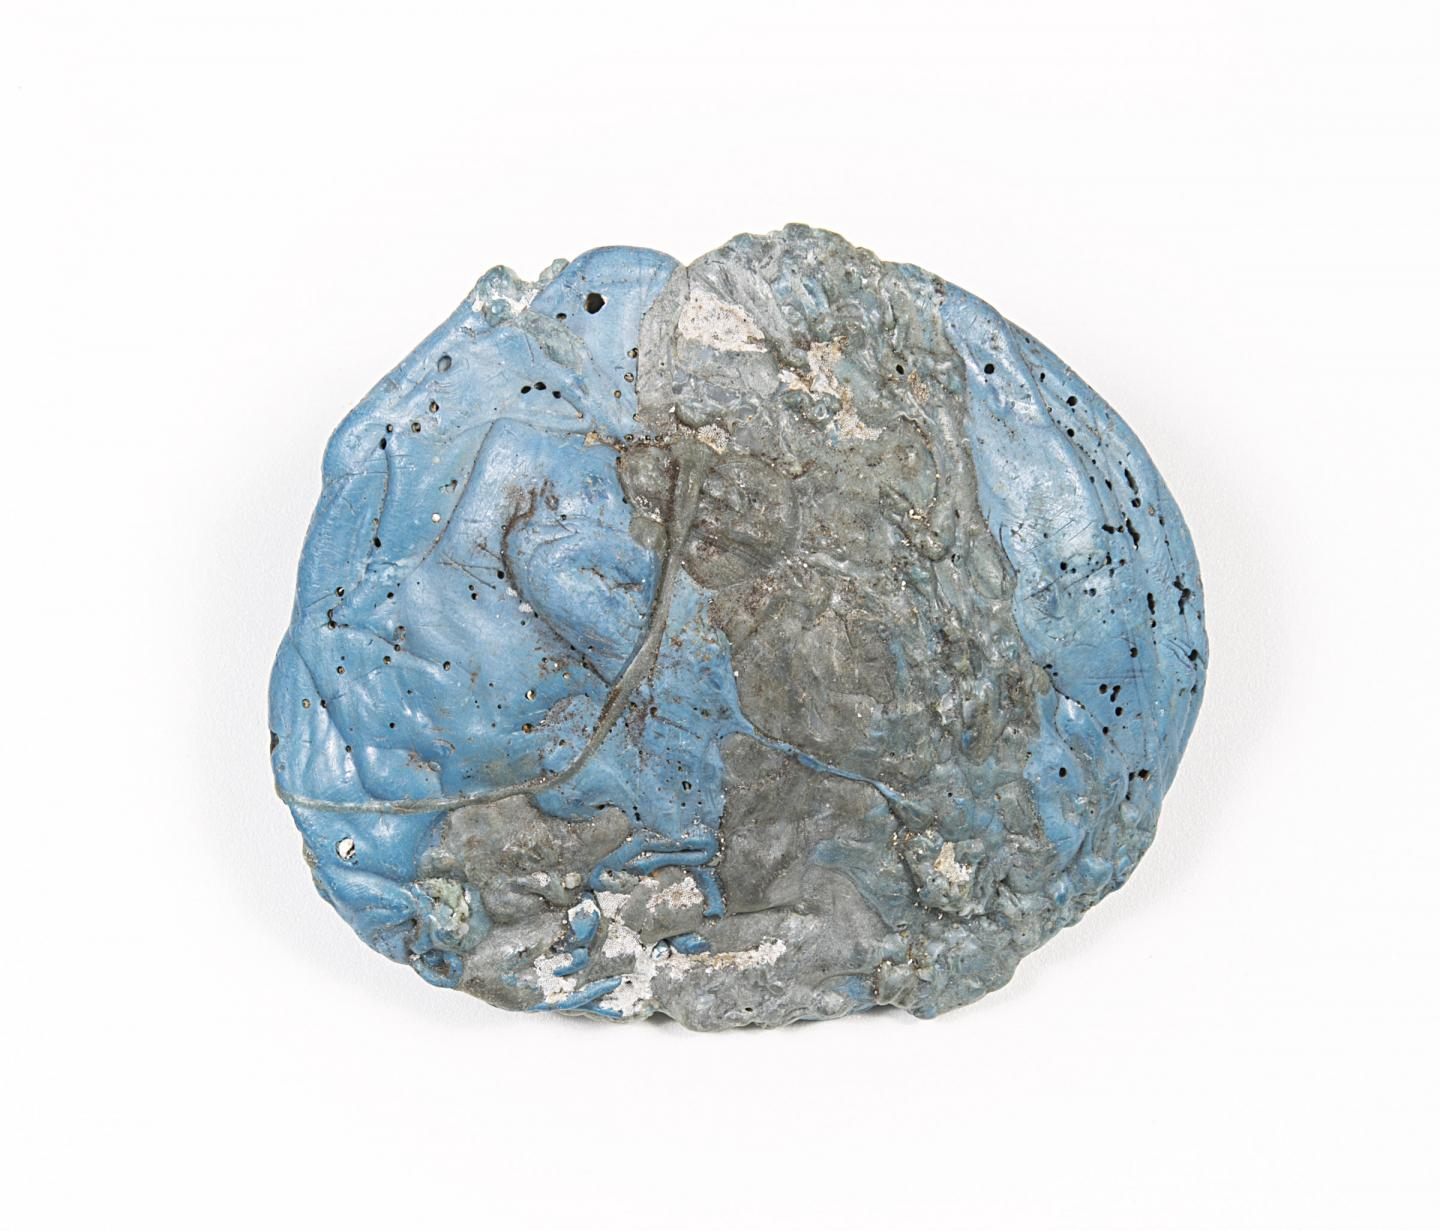 Spherical lump of blue material infused with grey metal.